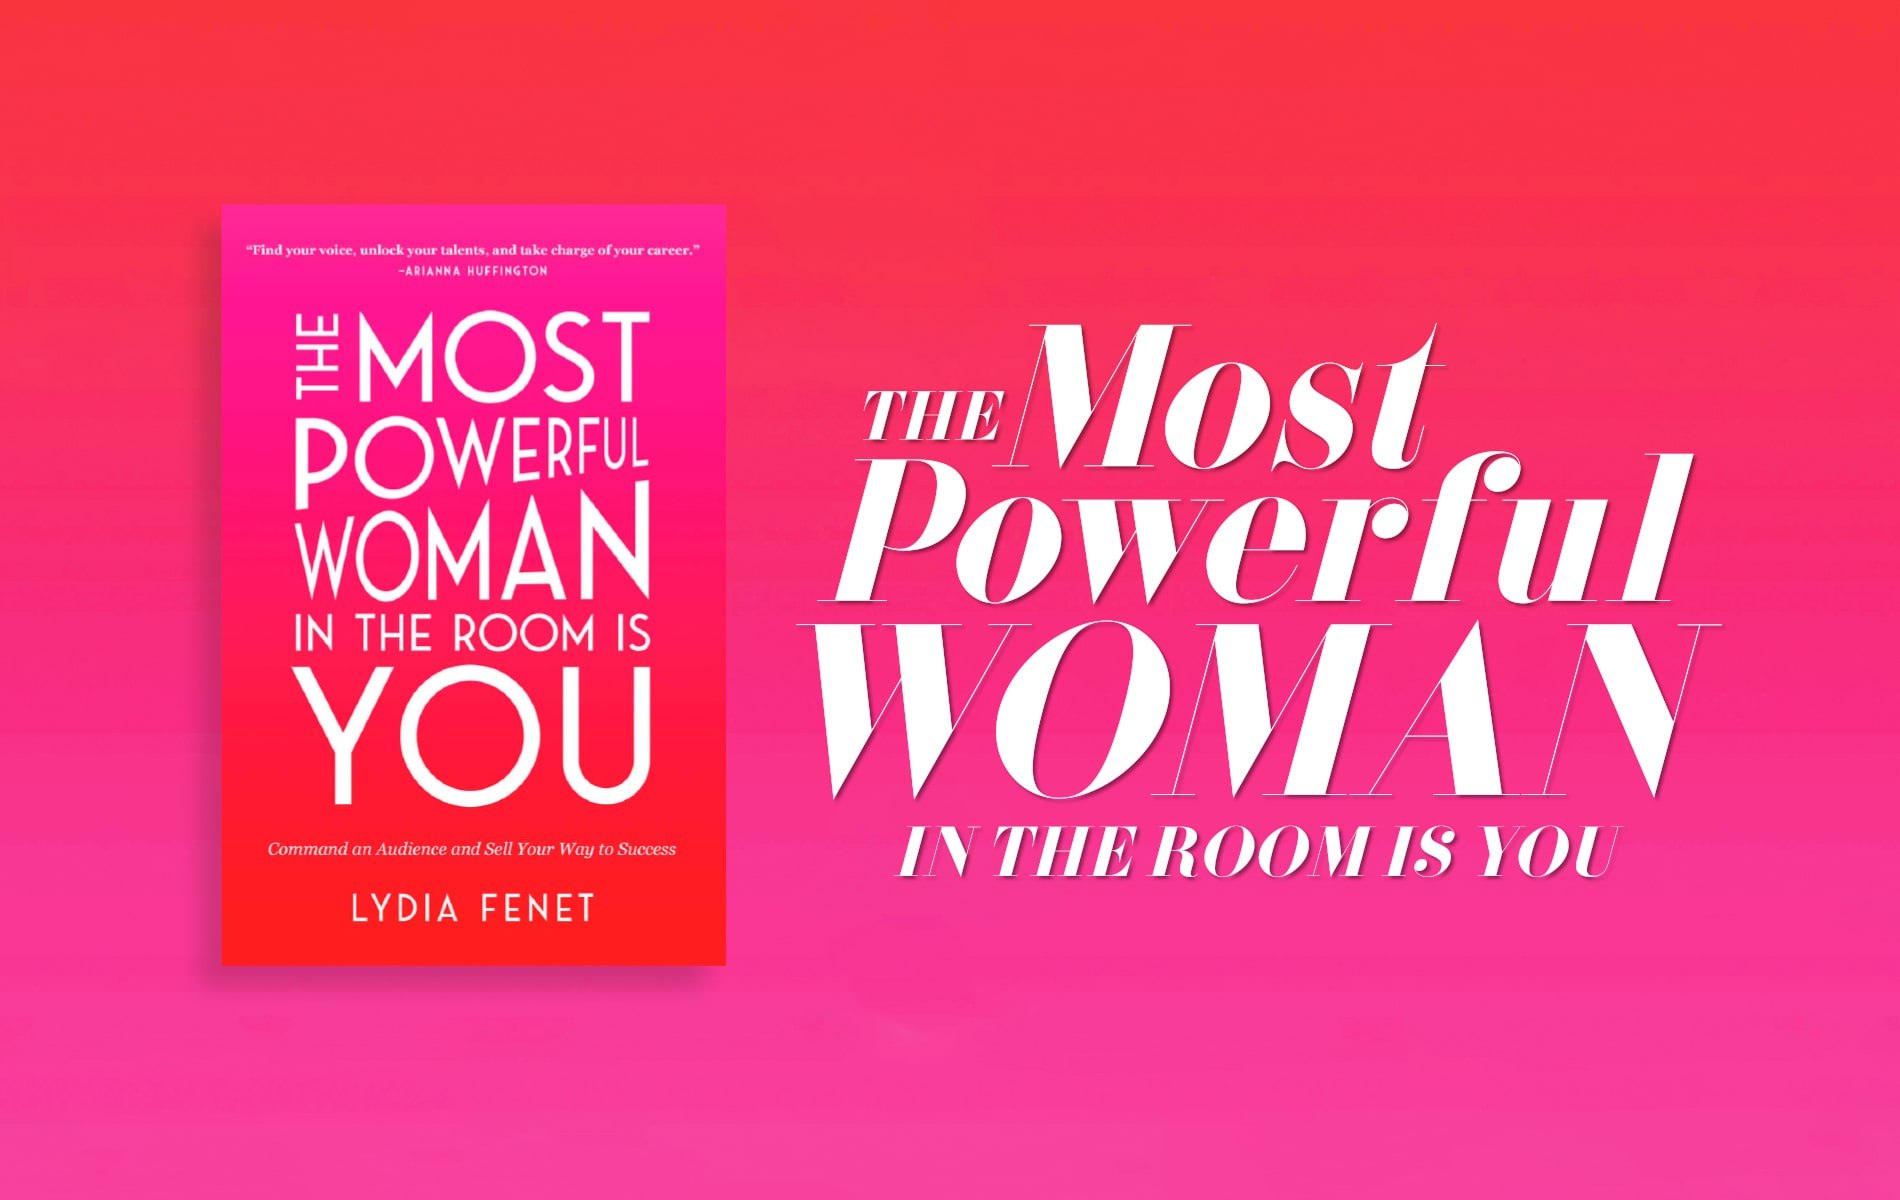 The Most Powerful Women in the Room Is You, Lydia Fenet, VIE Book Club